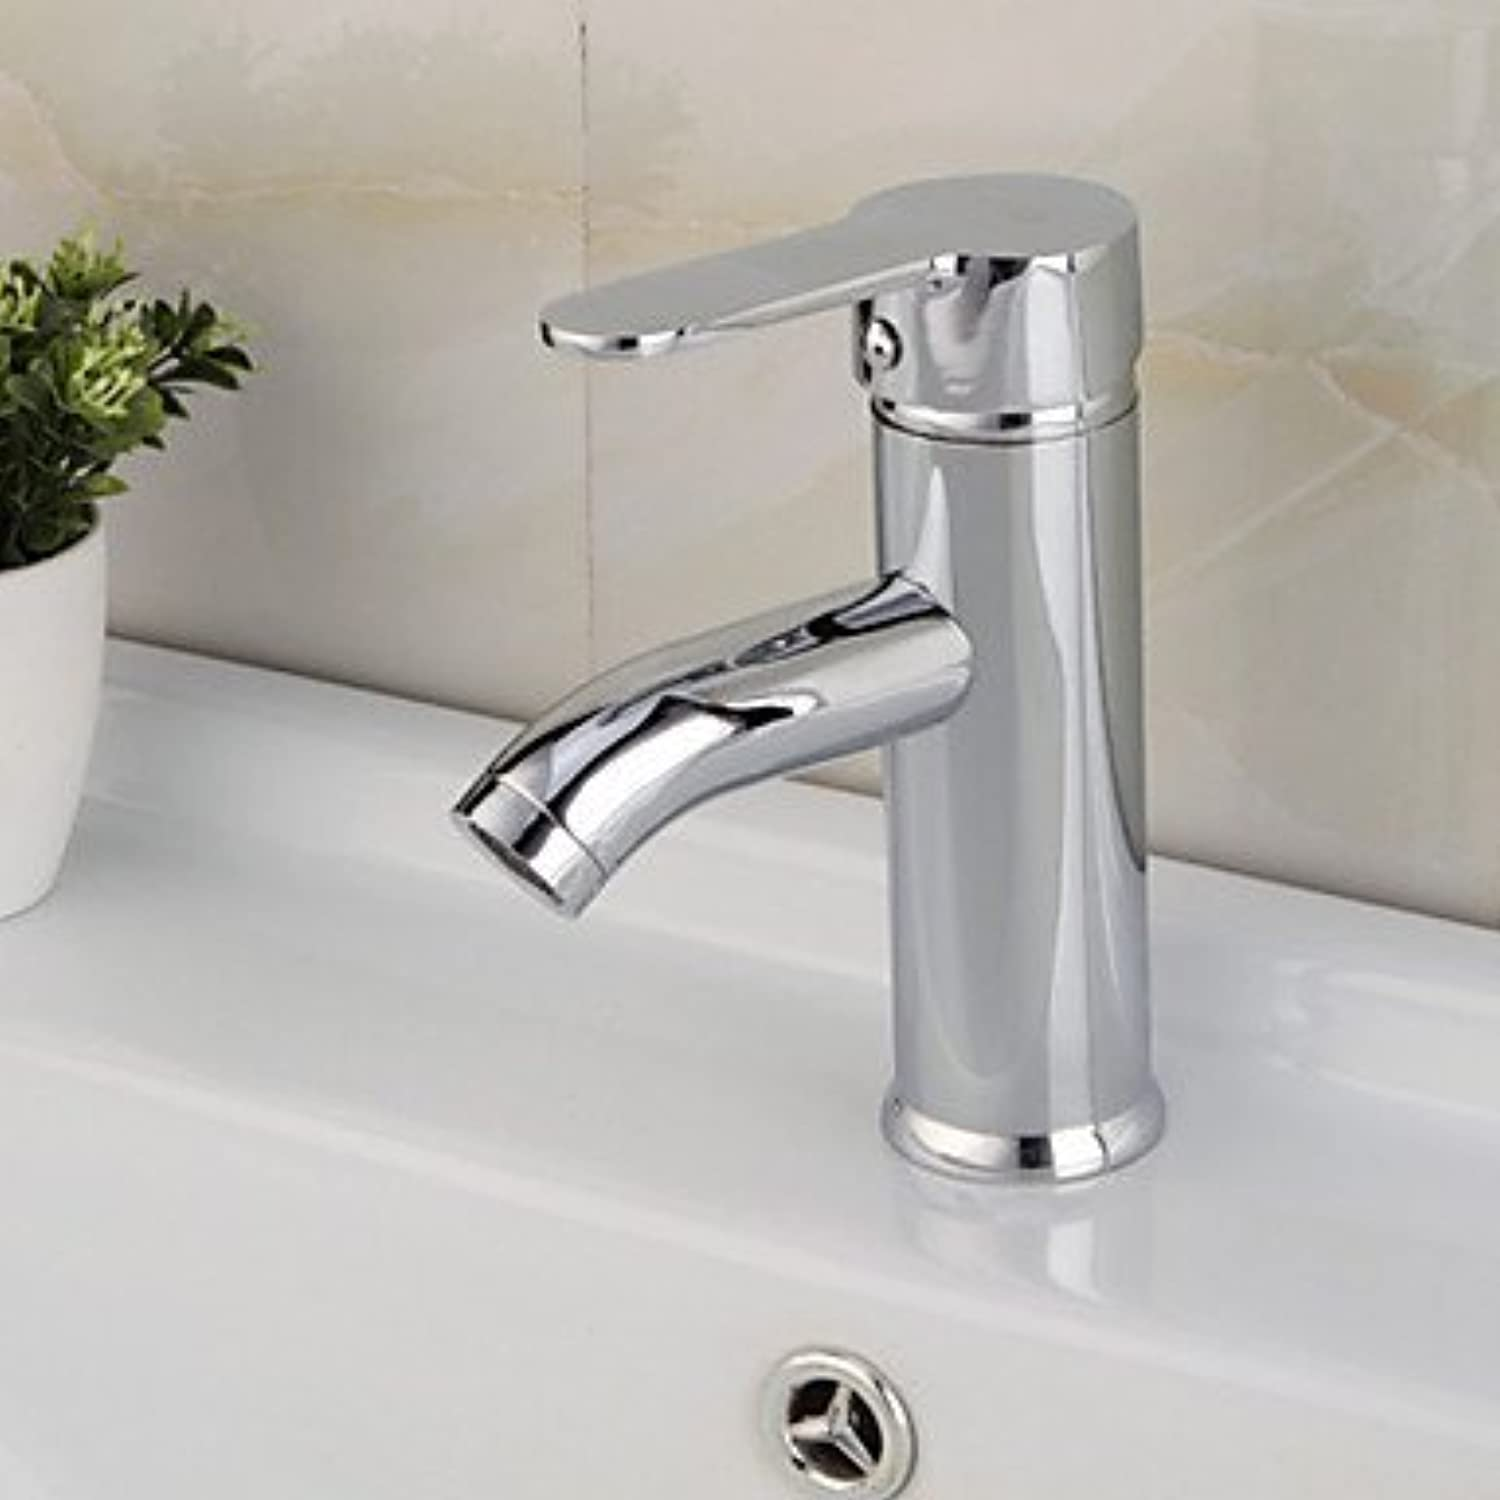 XTXWEN Water-tap Basin Faucets Contemporary Central Position Waterfall with Ceramic alve Handed a Hole for Chrome, Sink Faucet, Silvery